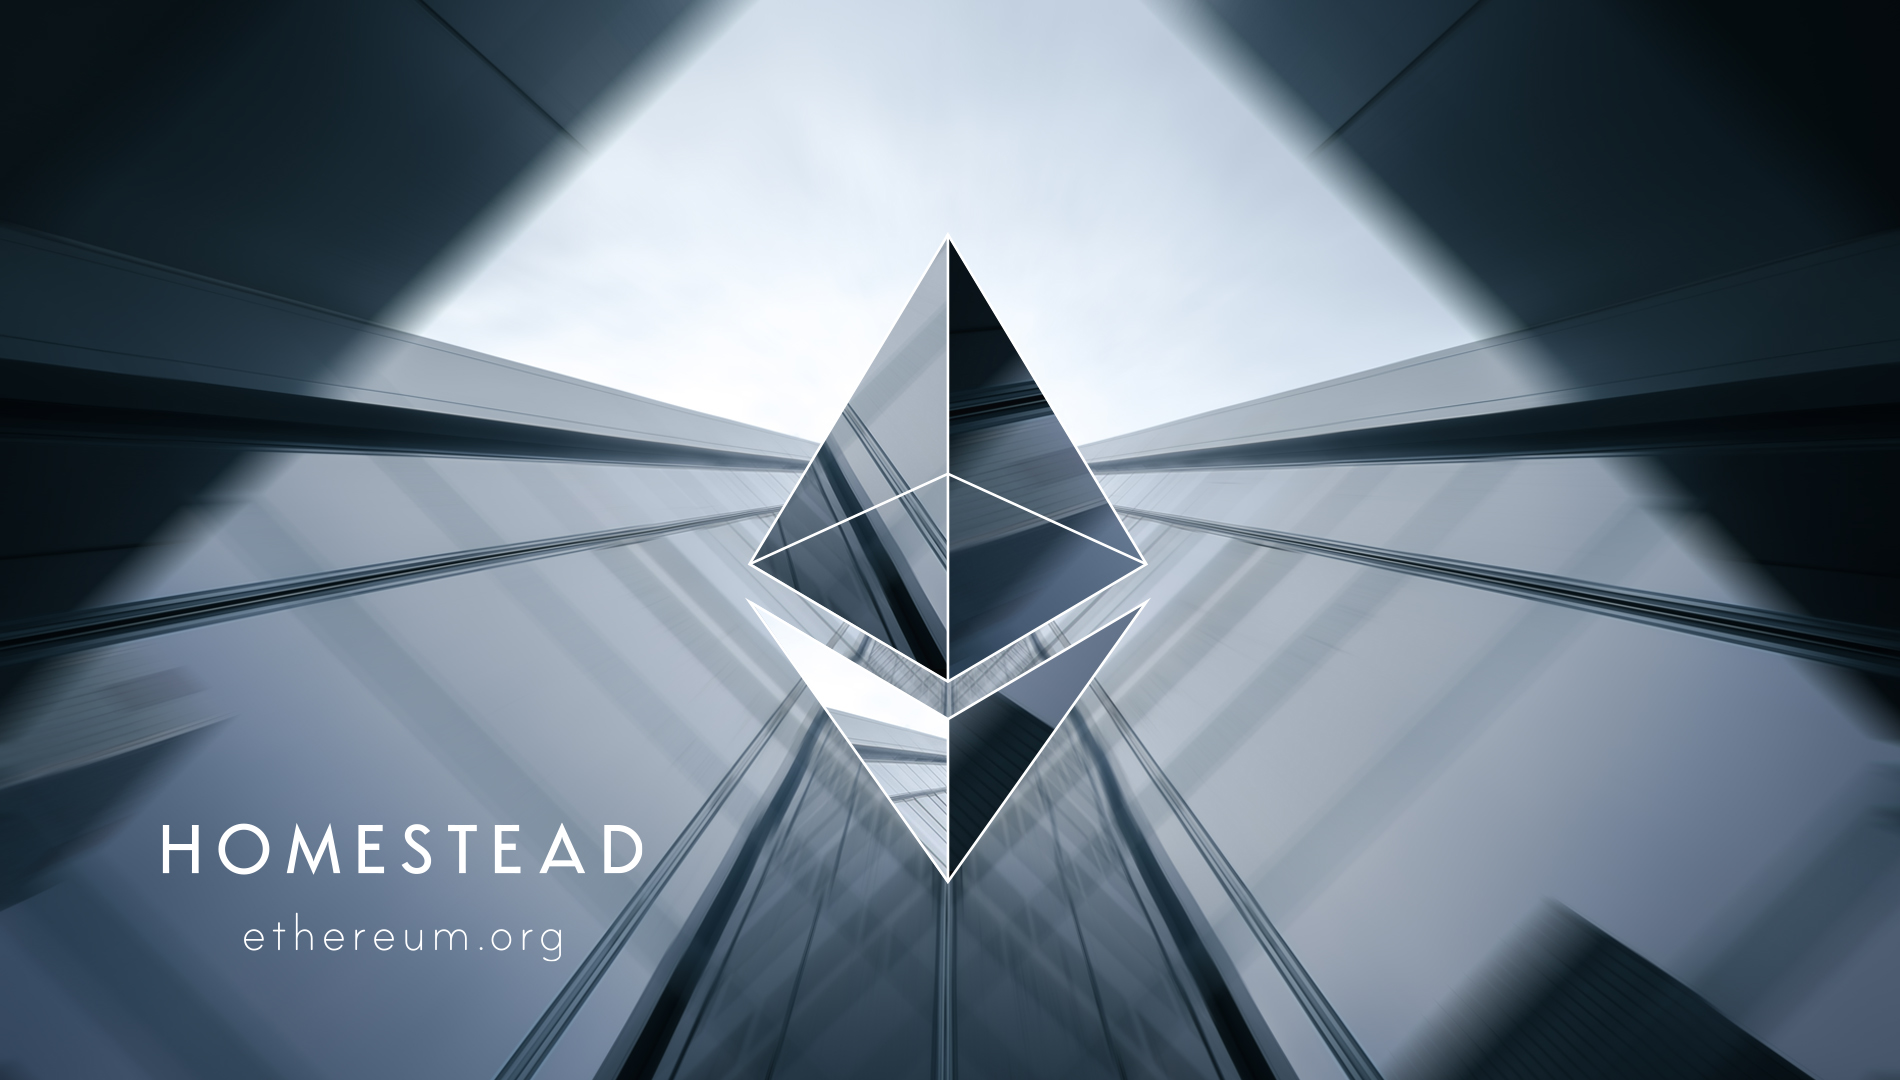 Ethereum-homestead-background-10